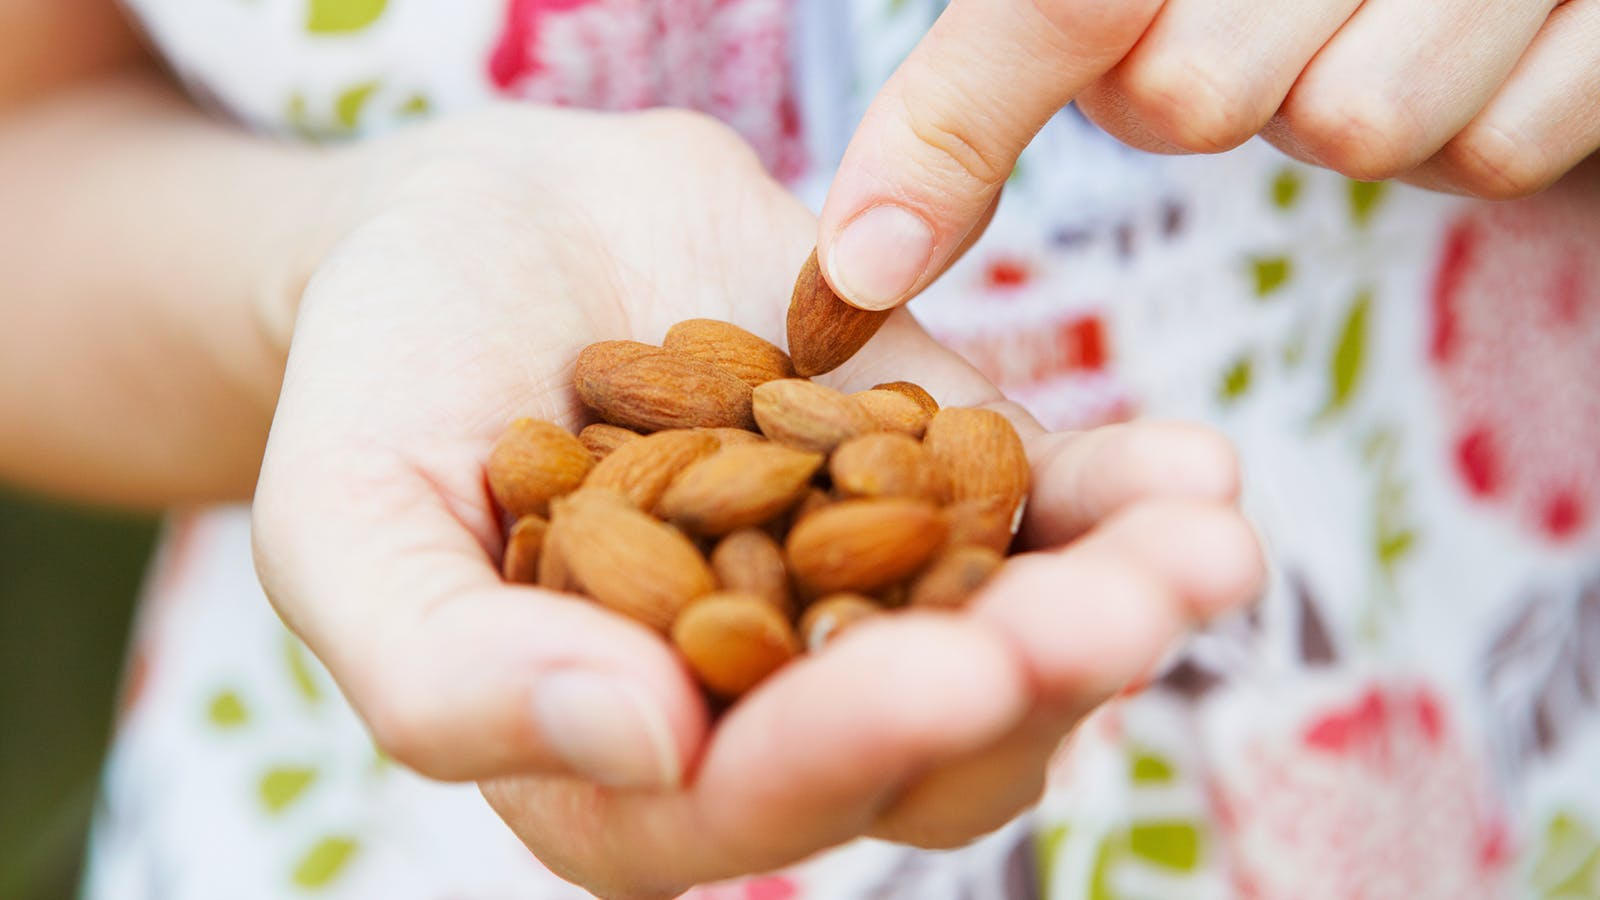 Woman snacking on nuts